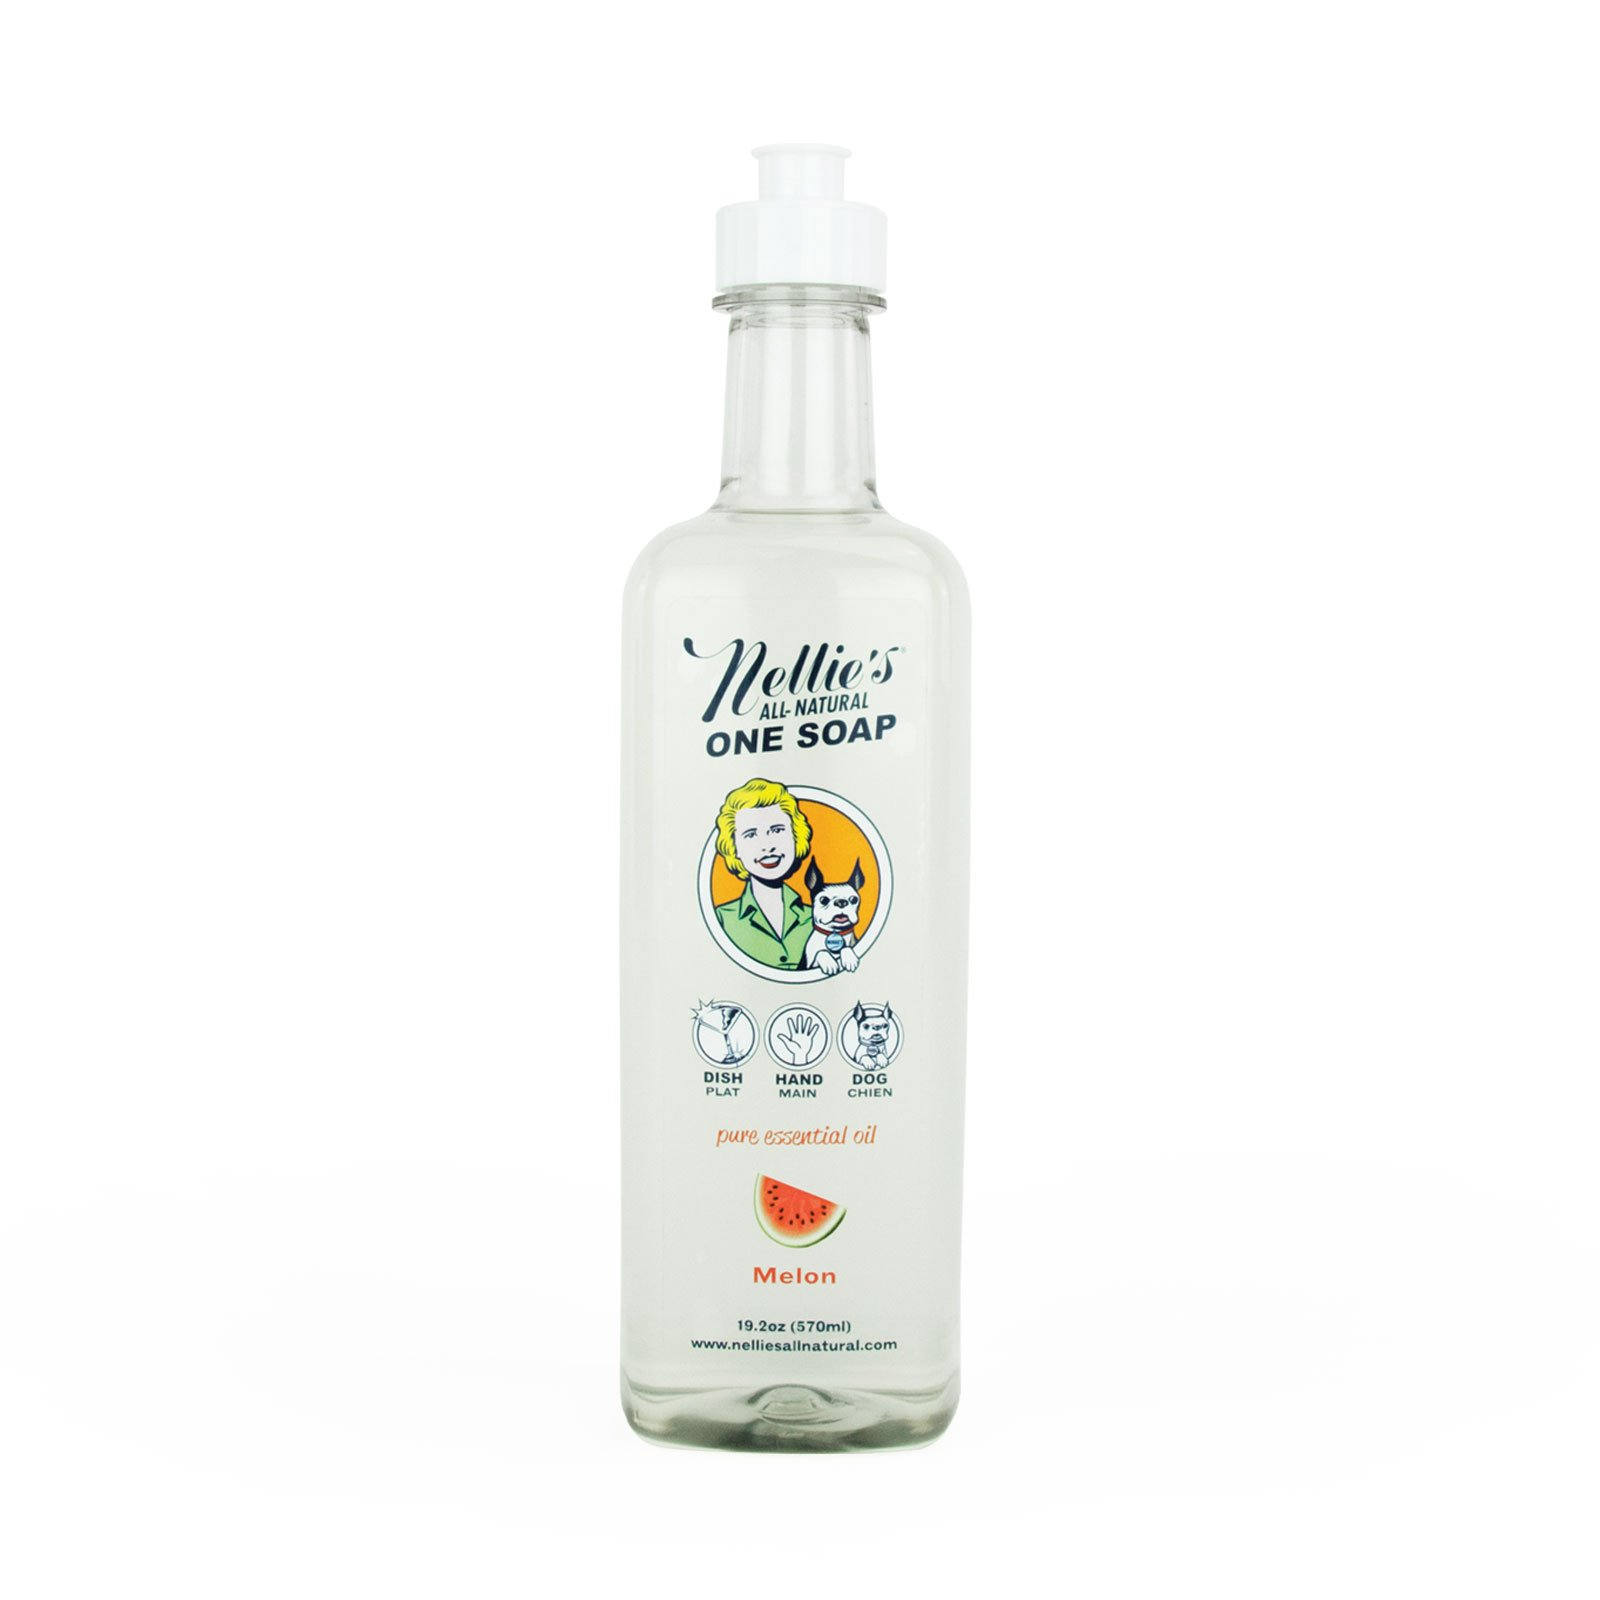 Nellie's One Soap - Melon